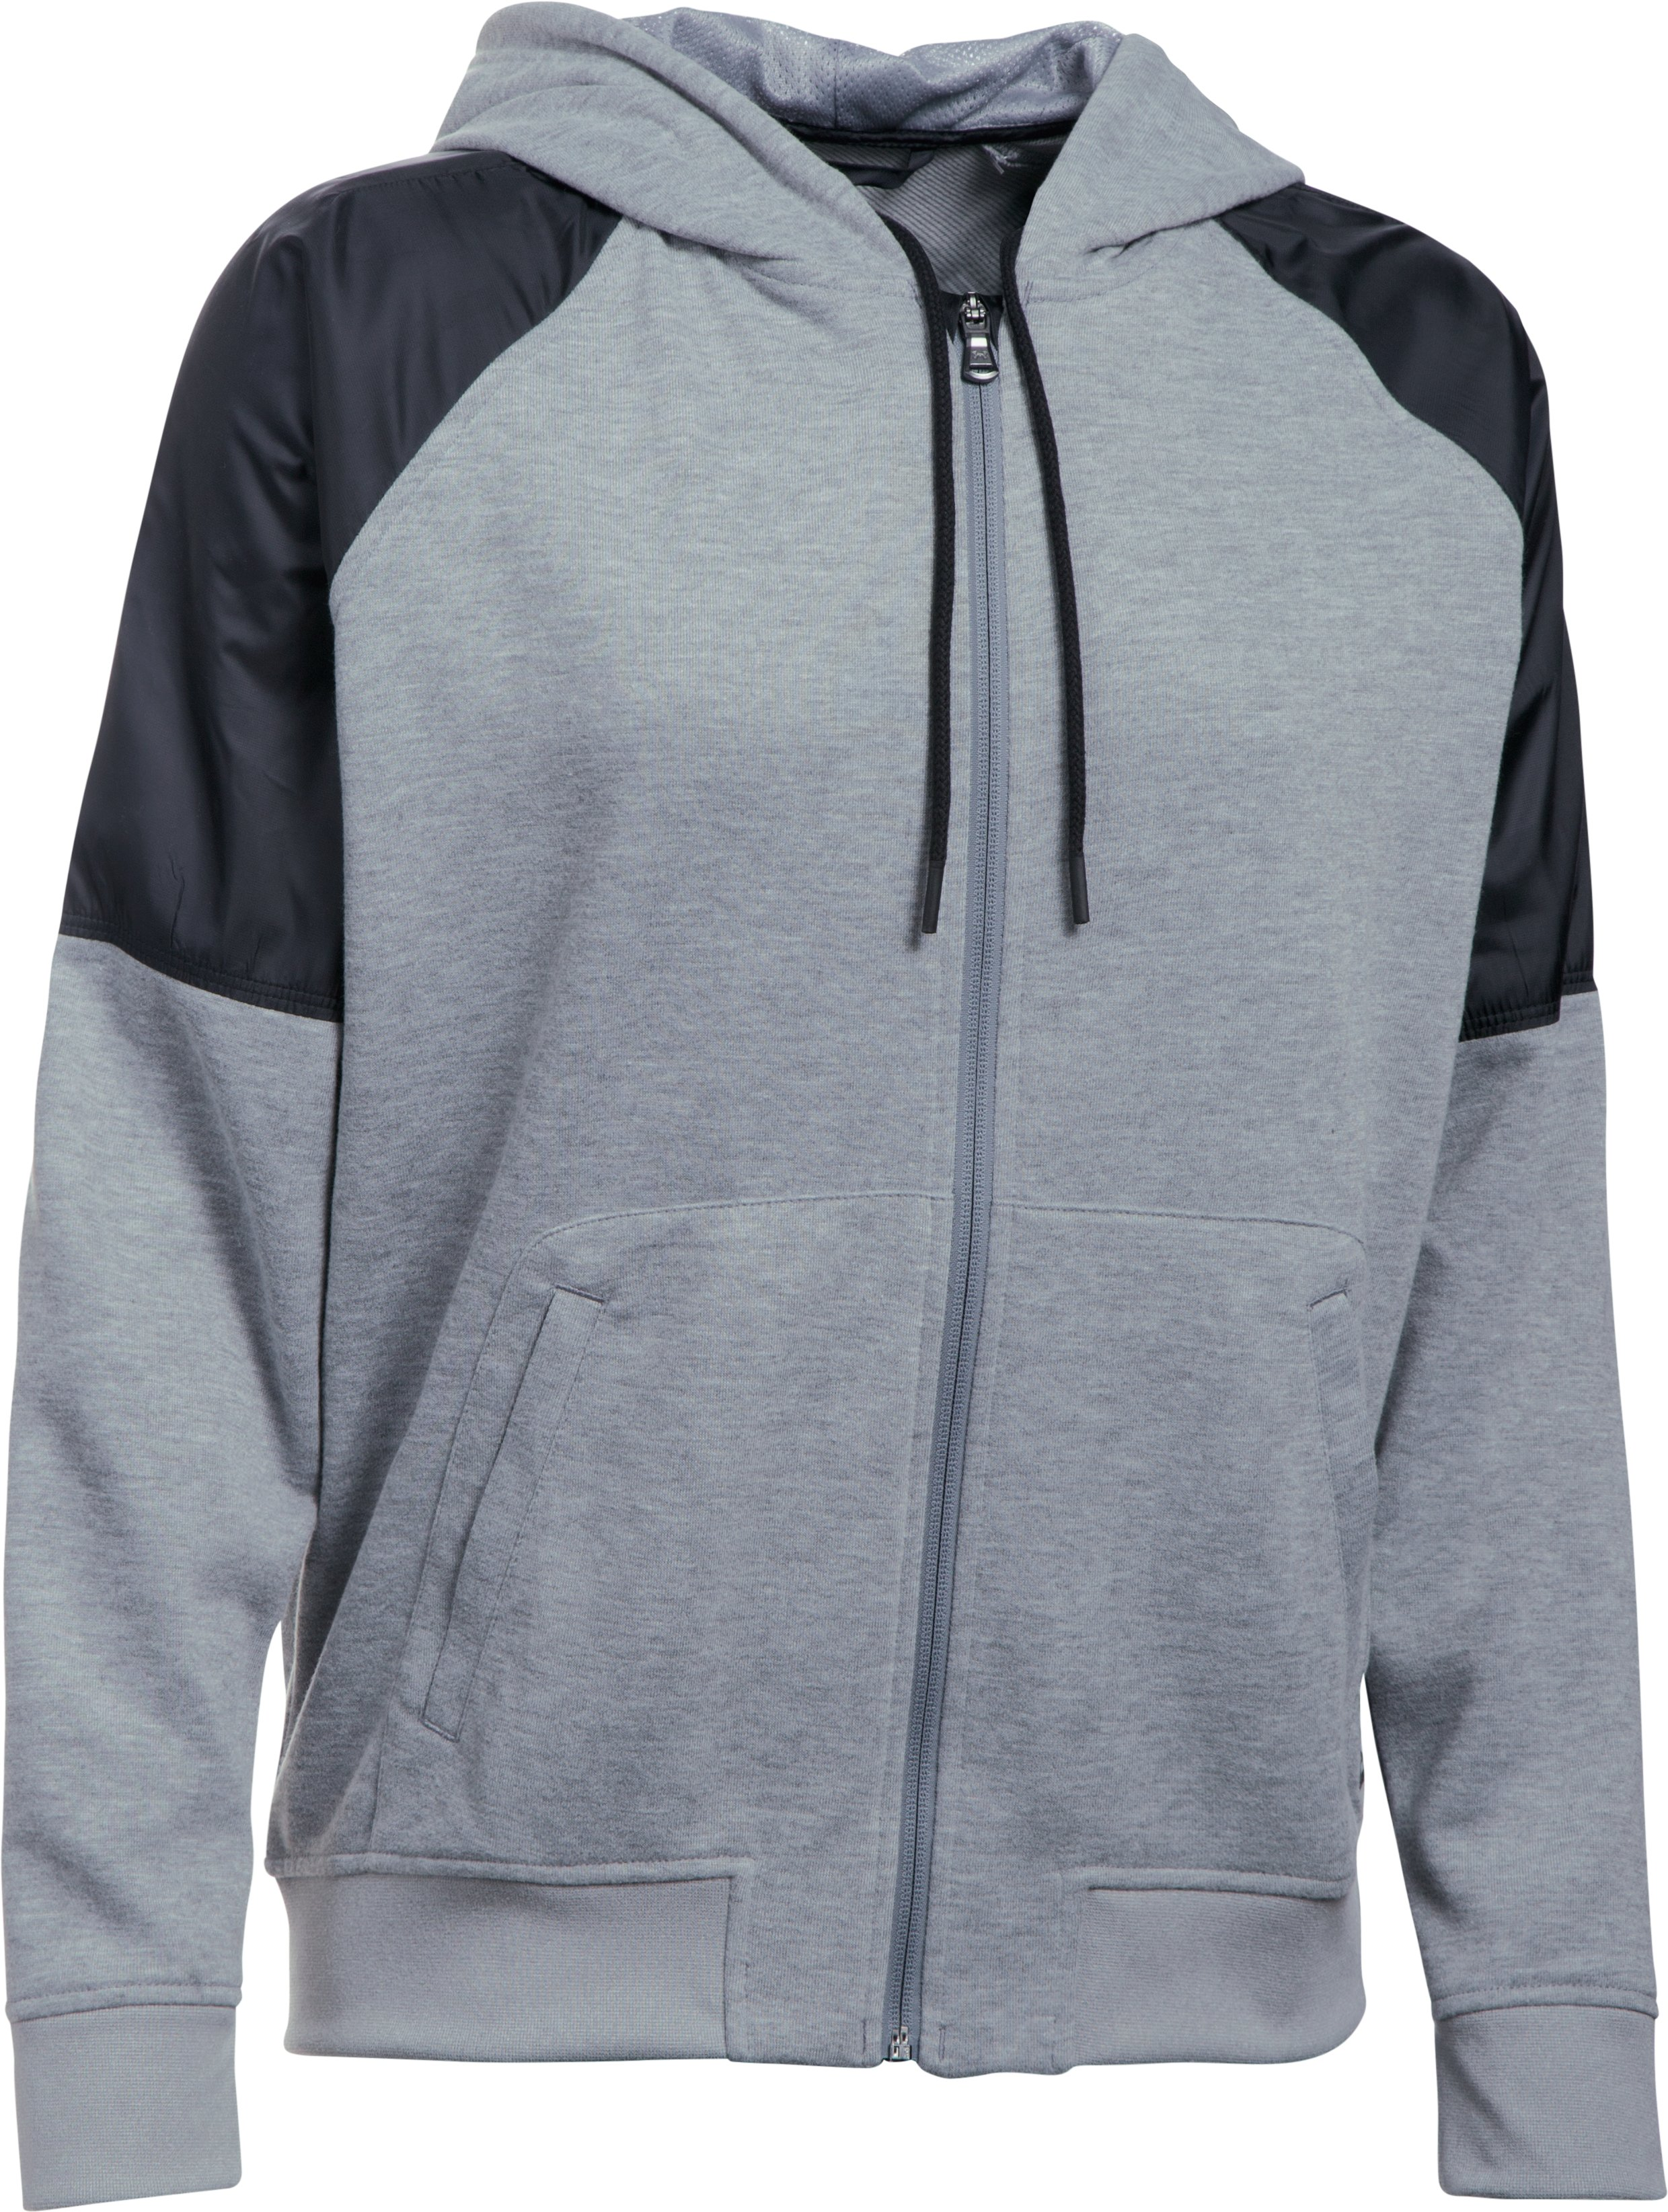 Women's UA Favorite French Terry Warm Up Hoodie, True Gray Heather, undefined